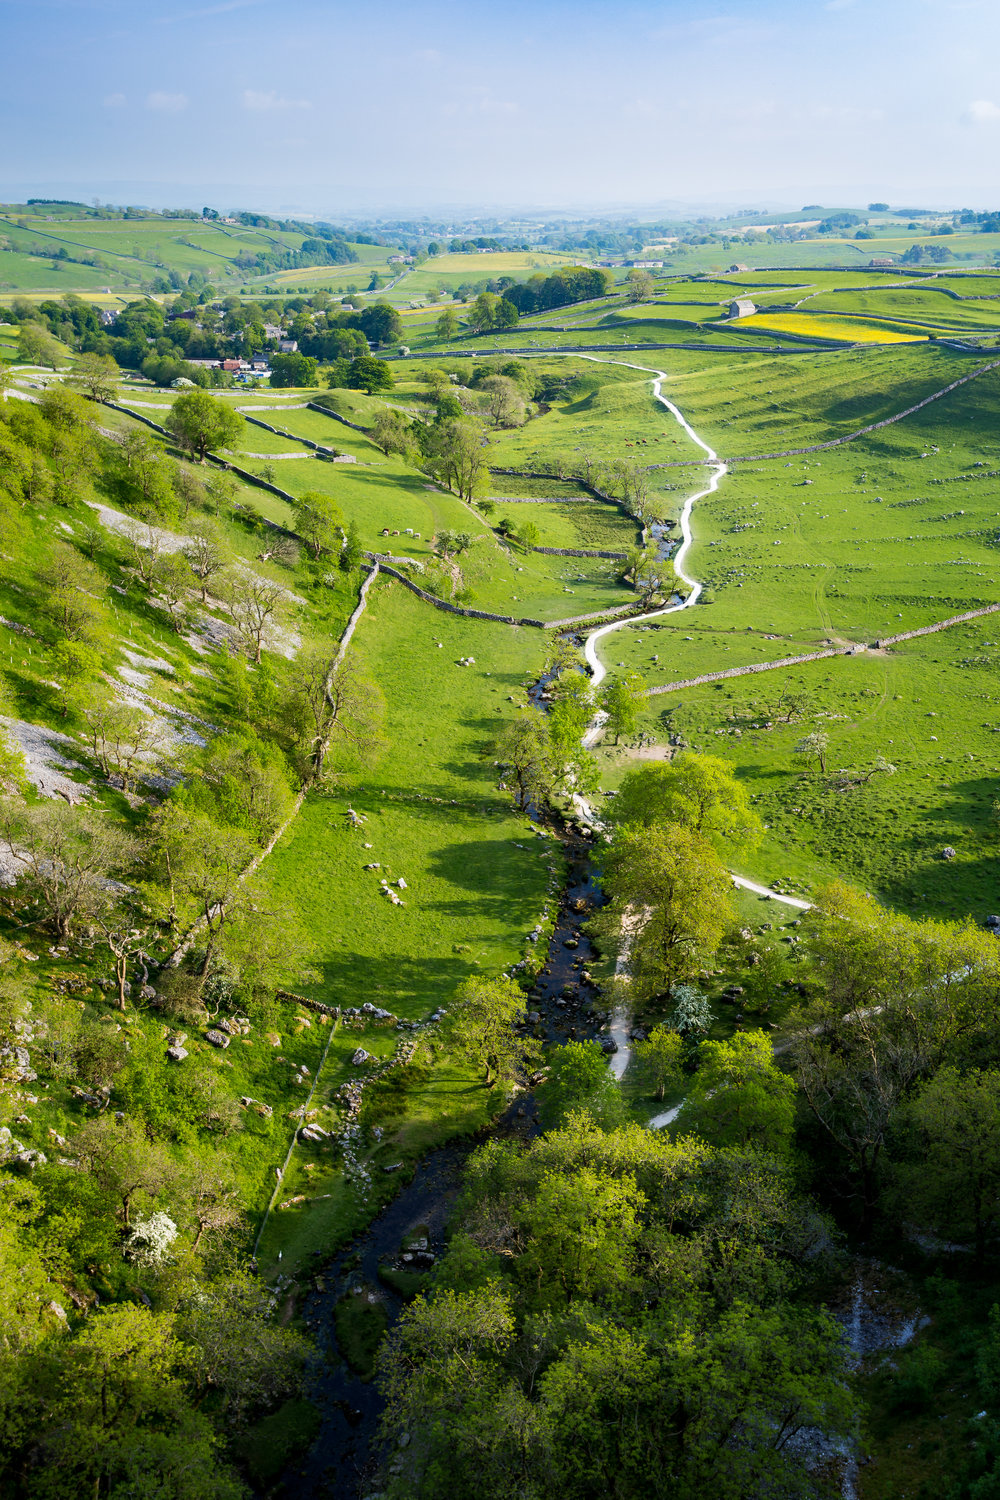 view from malham cove yorkshire dales national park england uk landscape travel.jpg